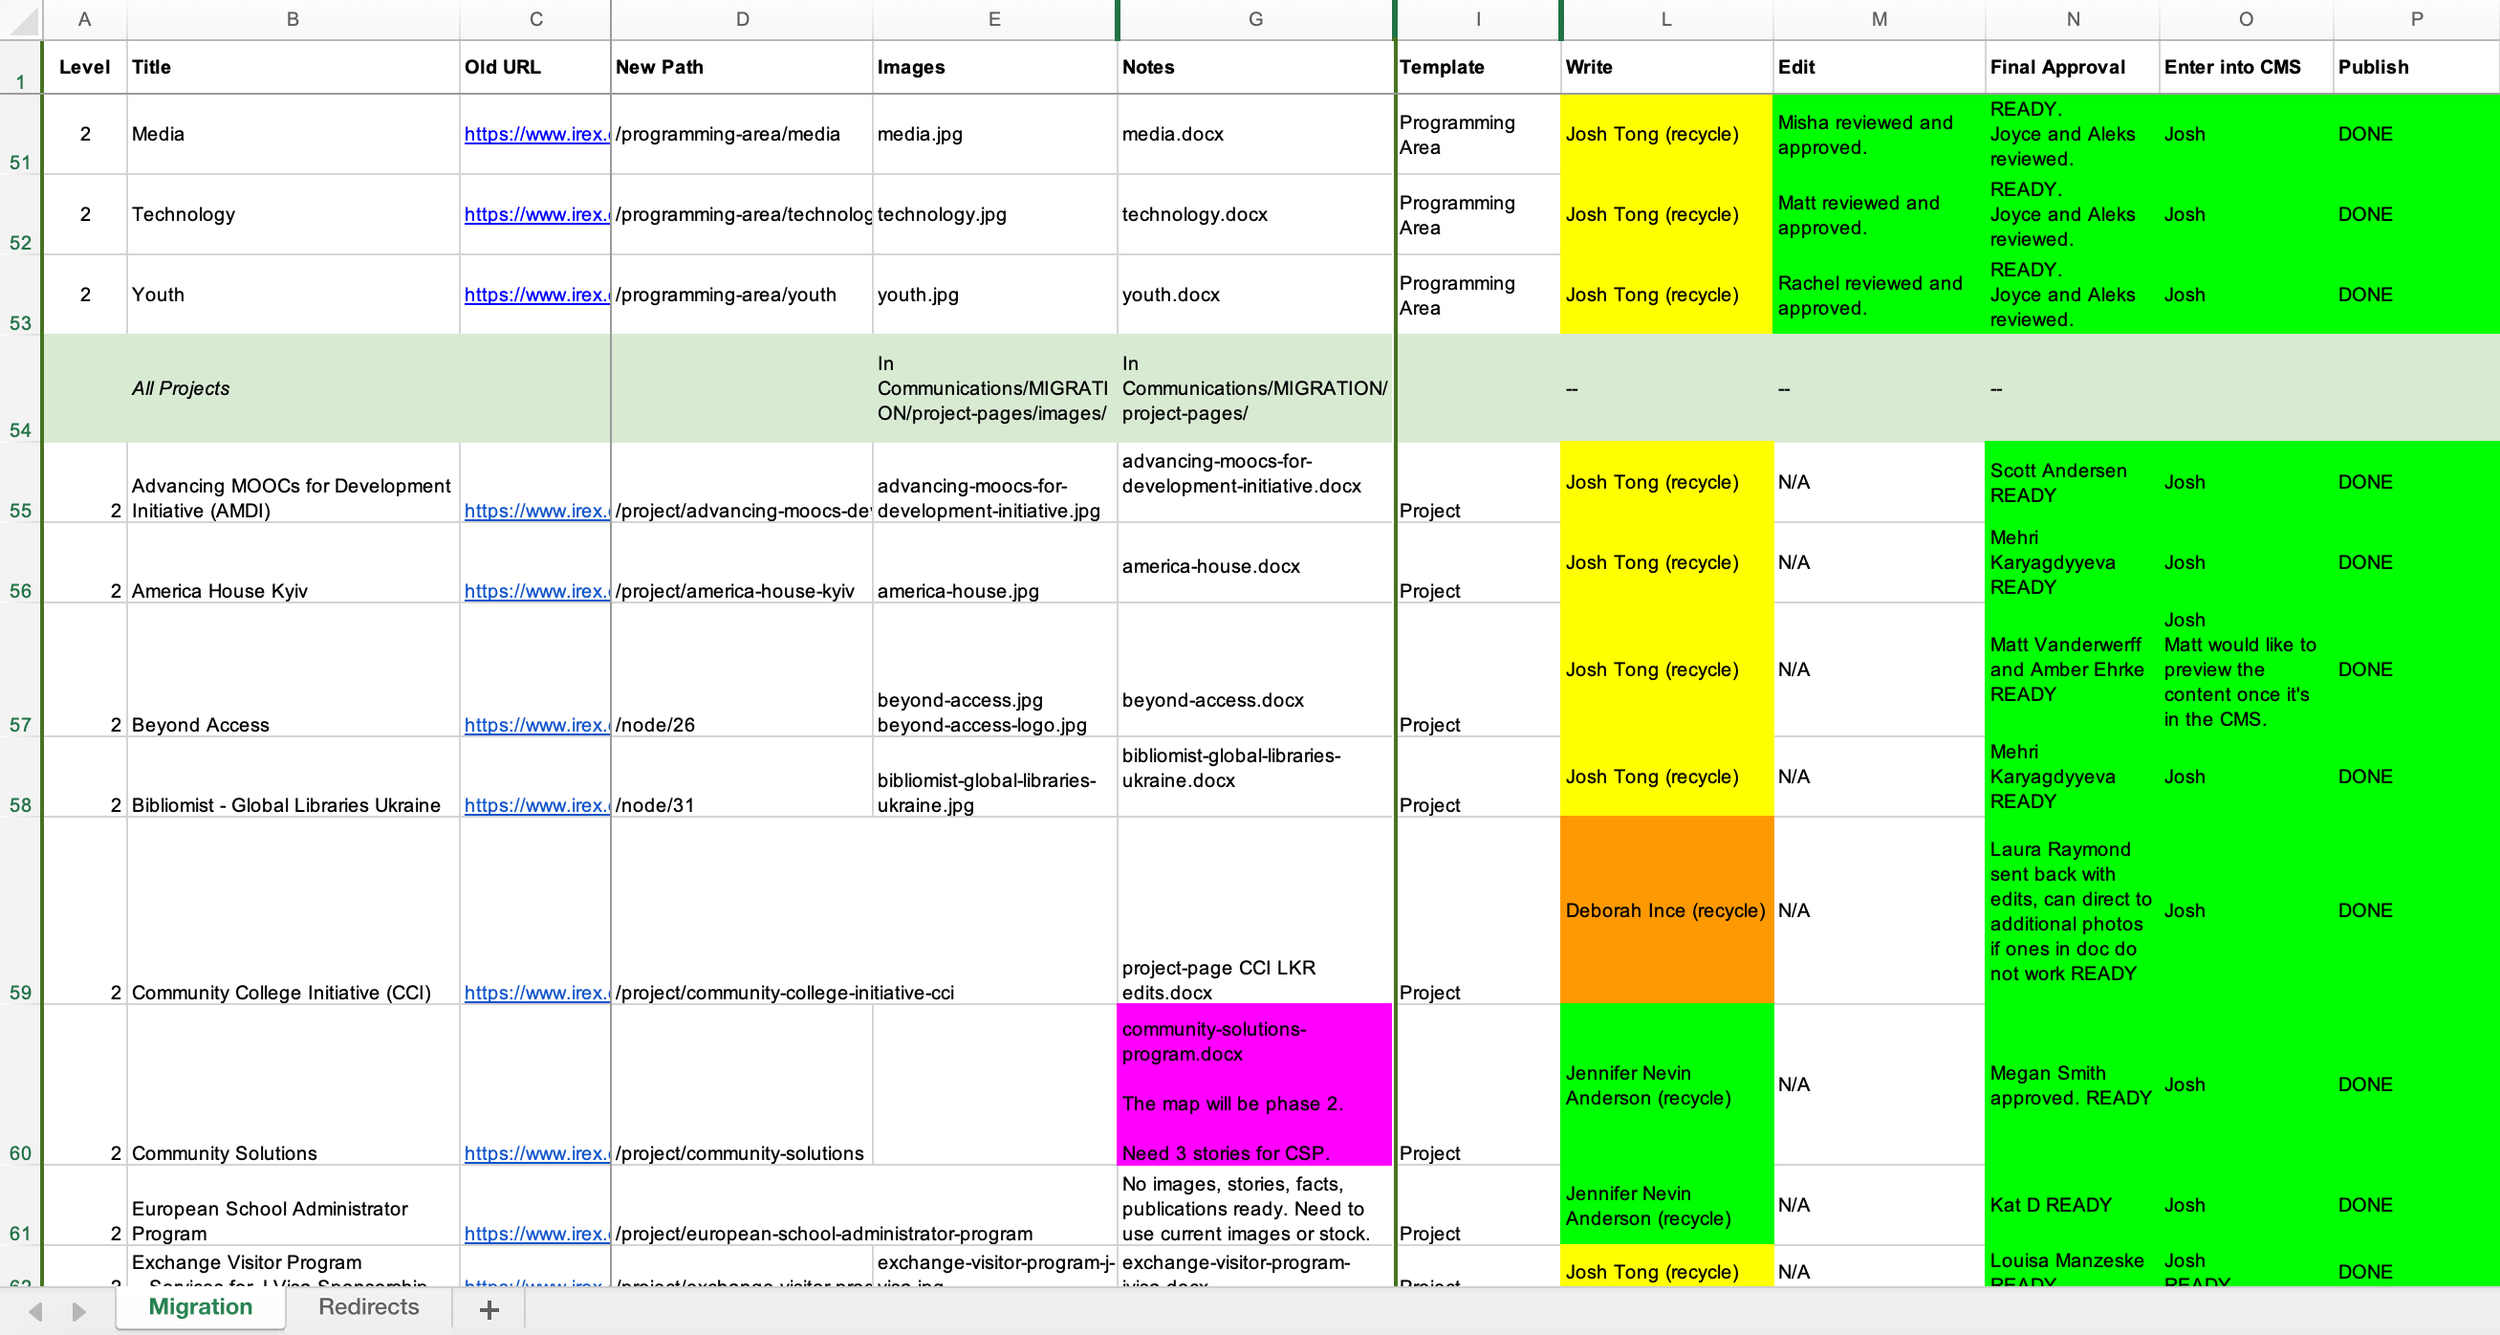 Content matrix from the redesign.